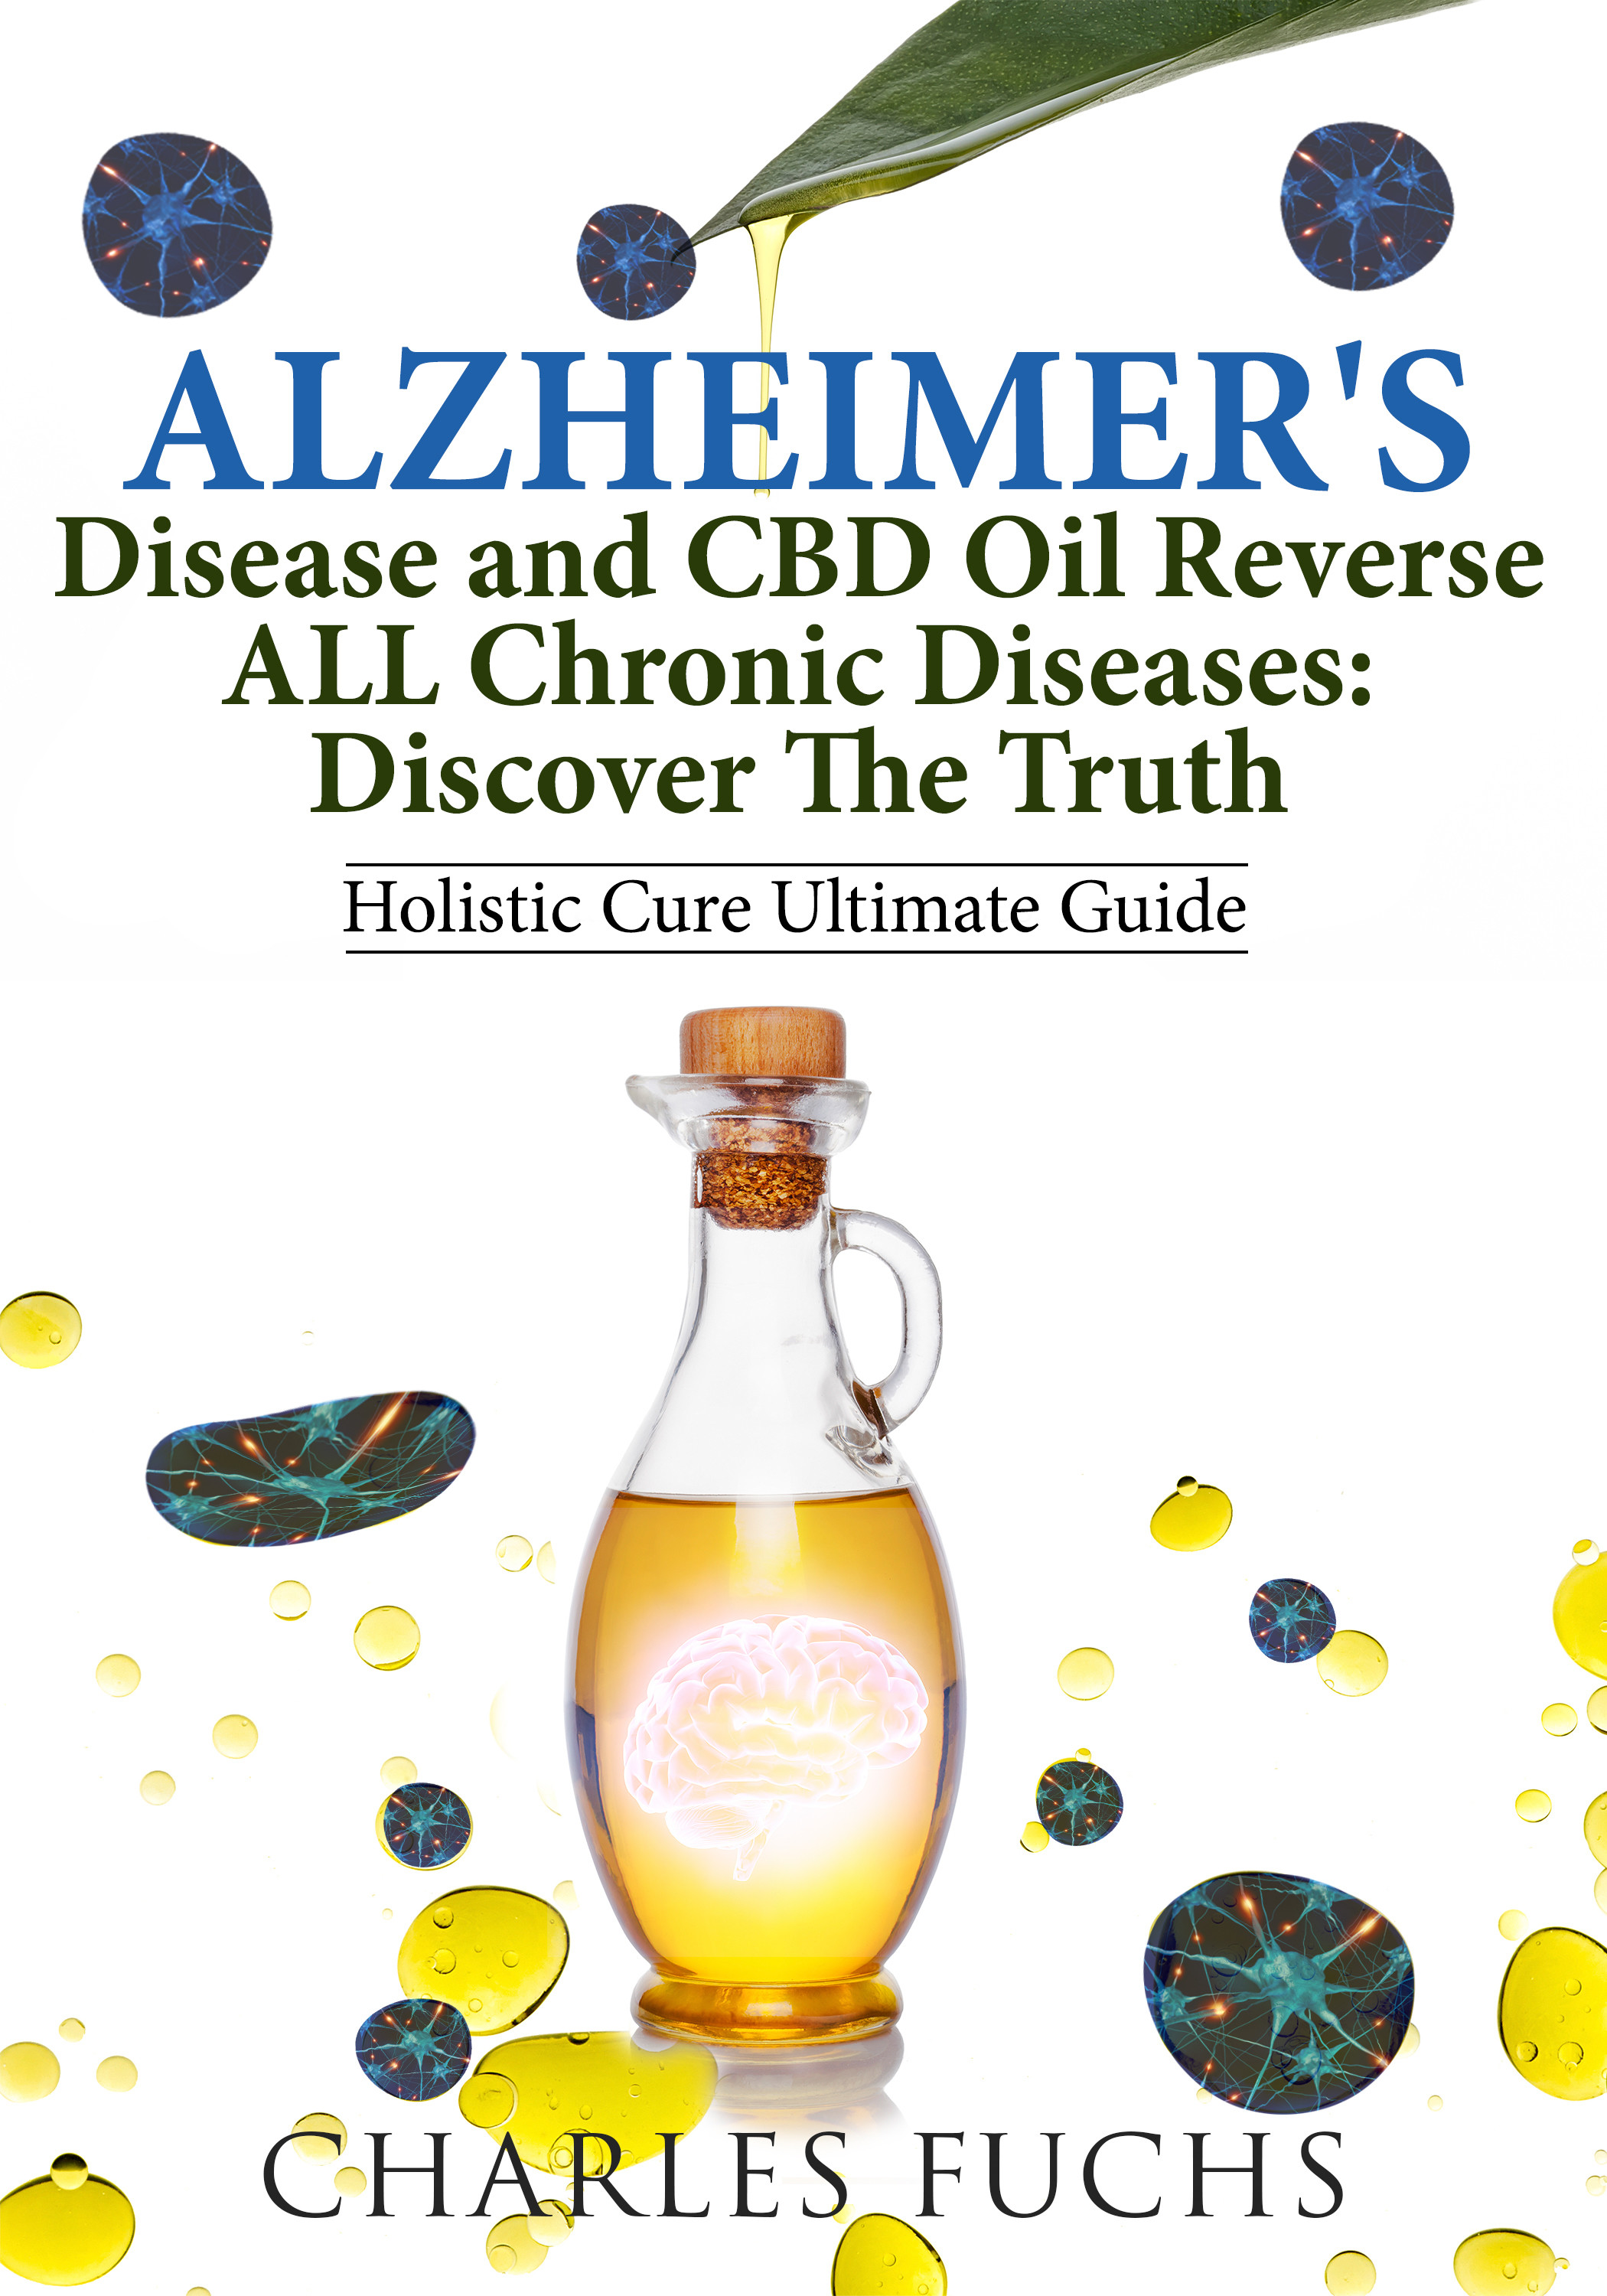 Alzheimer's Disease and CBD Oil Reverse ALL Chronic DiseasesDiscover The Truth